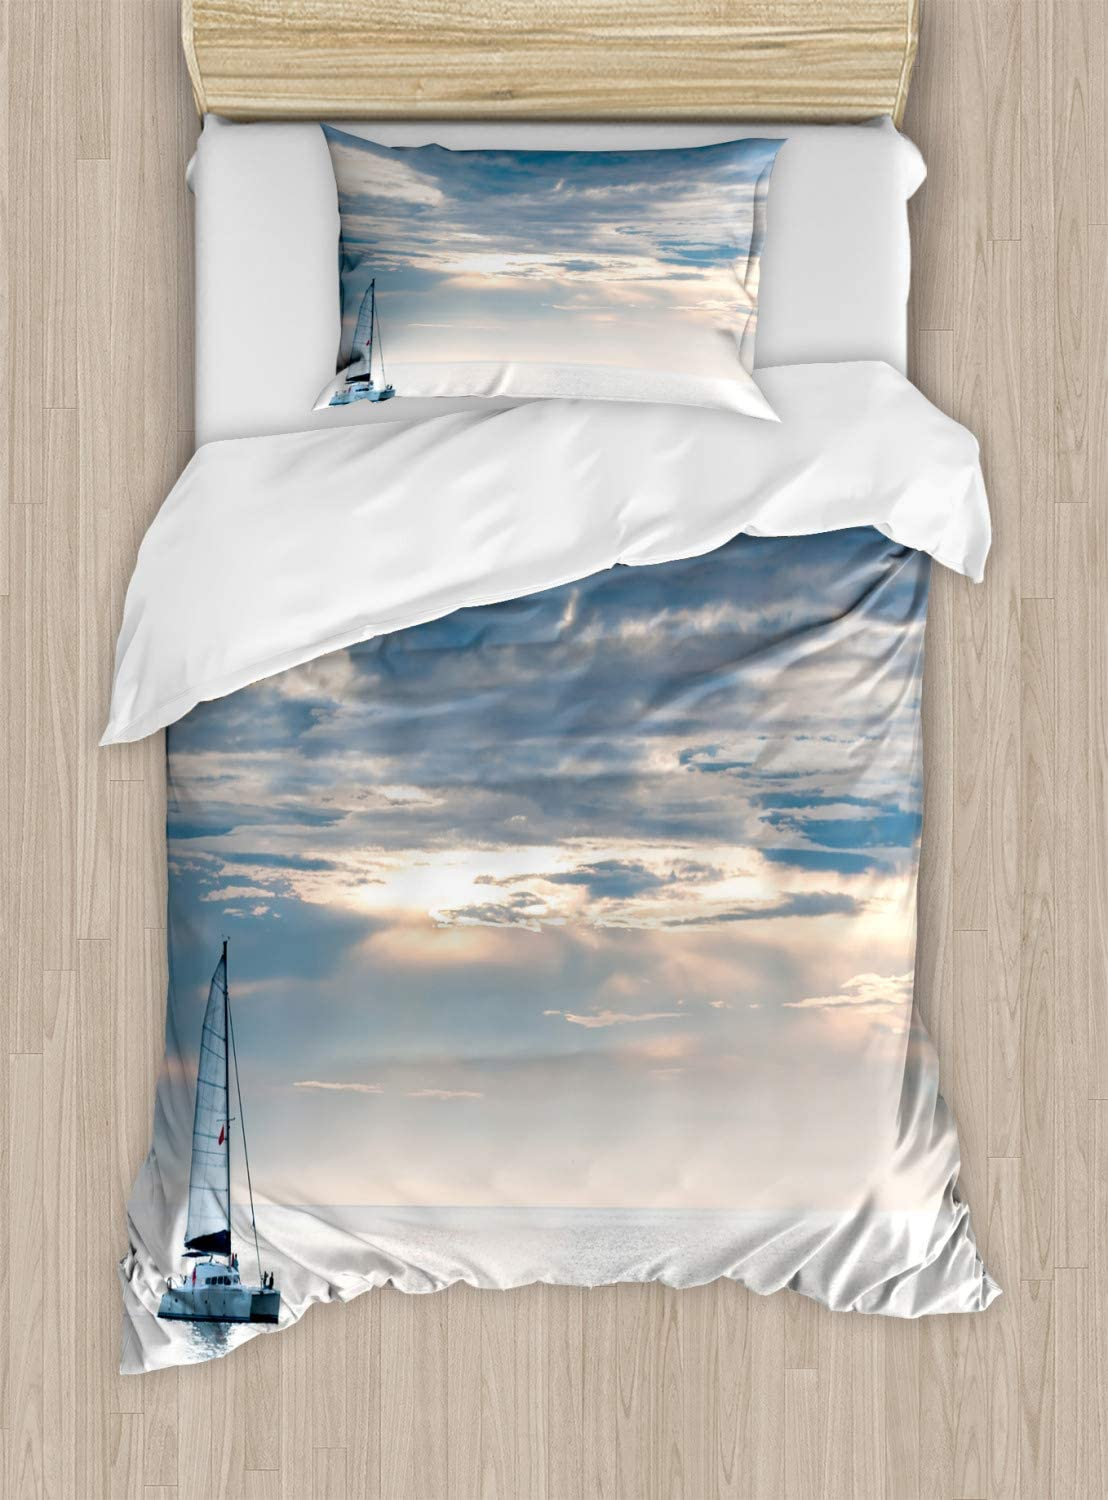 Ambesonne Nautical Duvet Cover Set, Sailing Yacht in The Morning Time on Tranquil Seascape Cloudy Sky Peaceful Marine Image, Decorative 2 Piece Bedding Set with 1 Pillow Sham, Twin Size, Blue